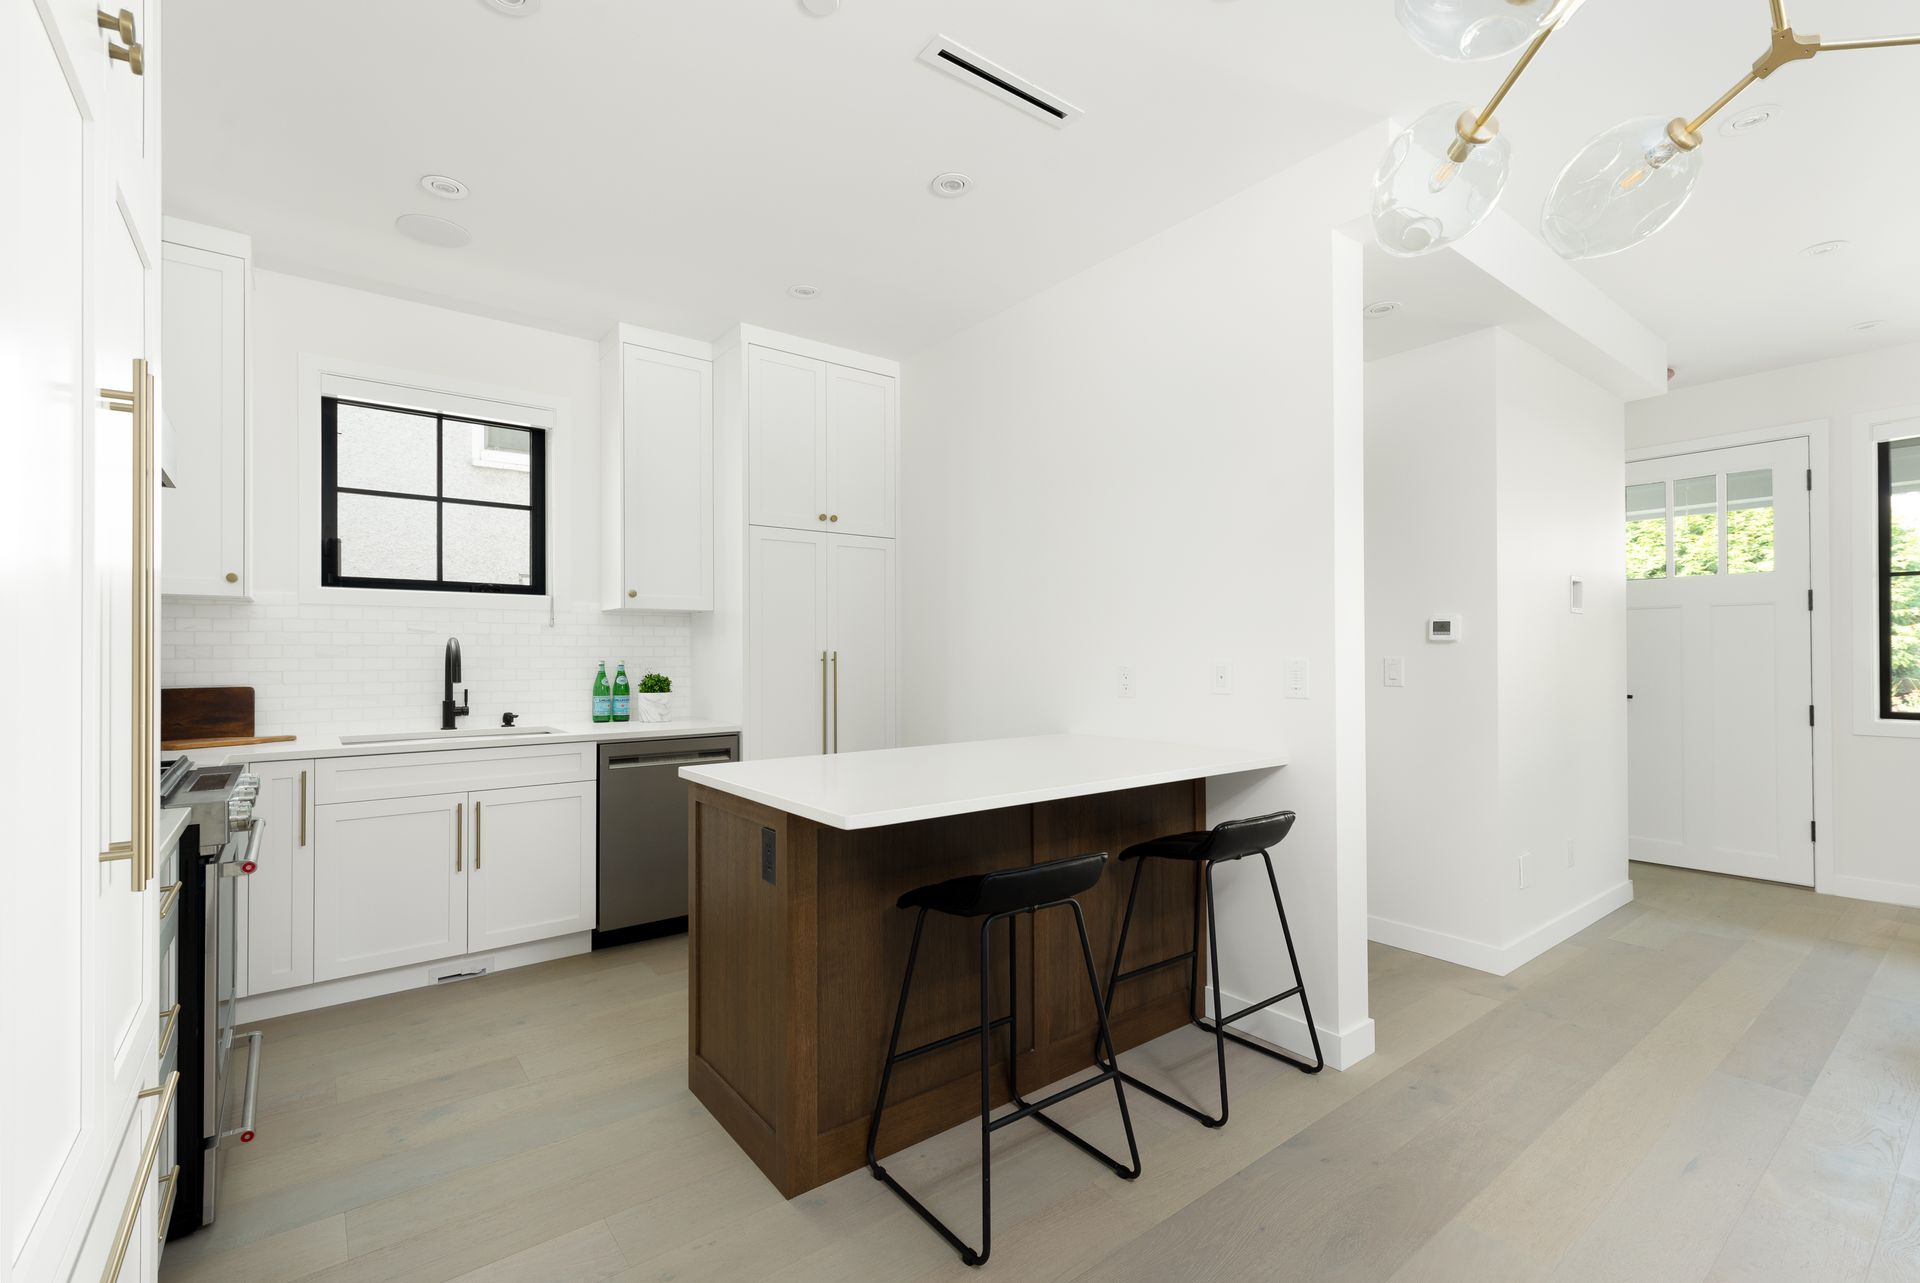 2476-e-pender-vancouver-360hometours-07 at